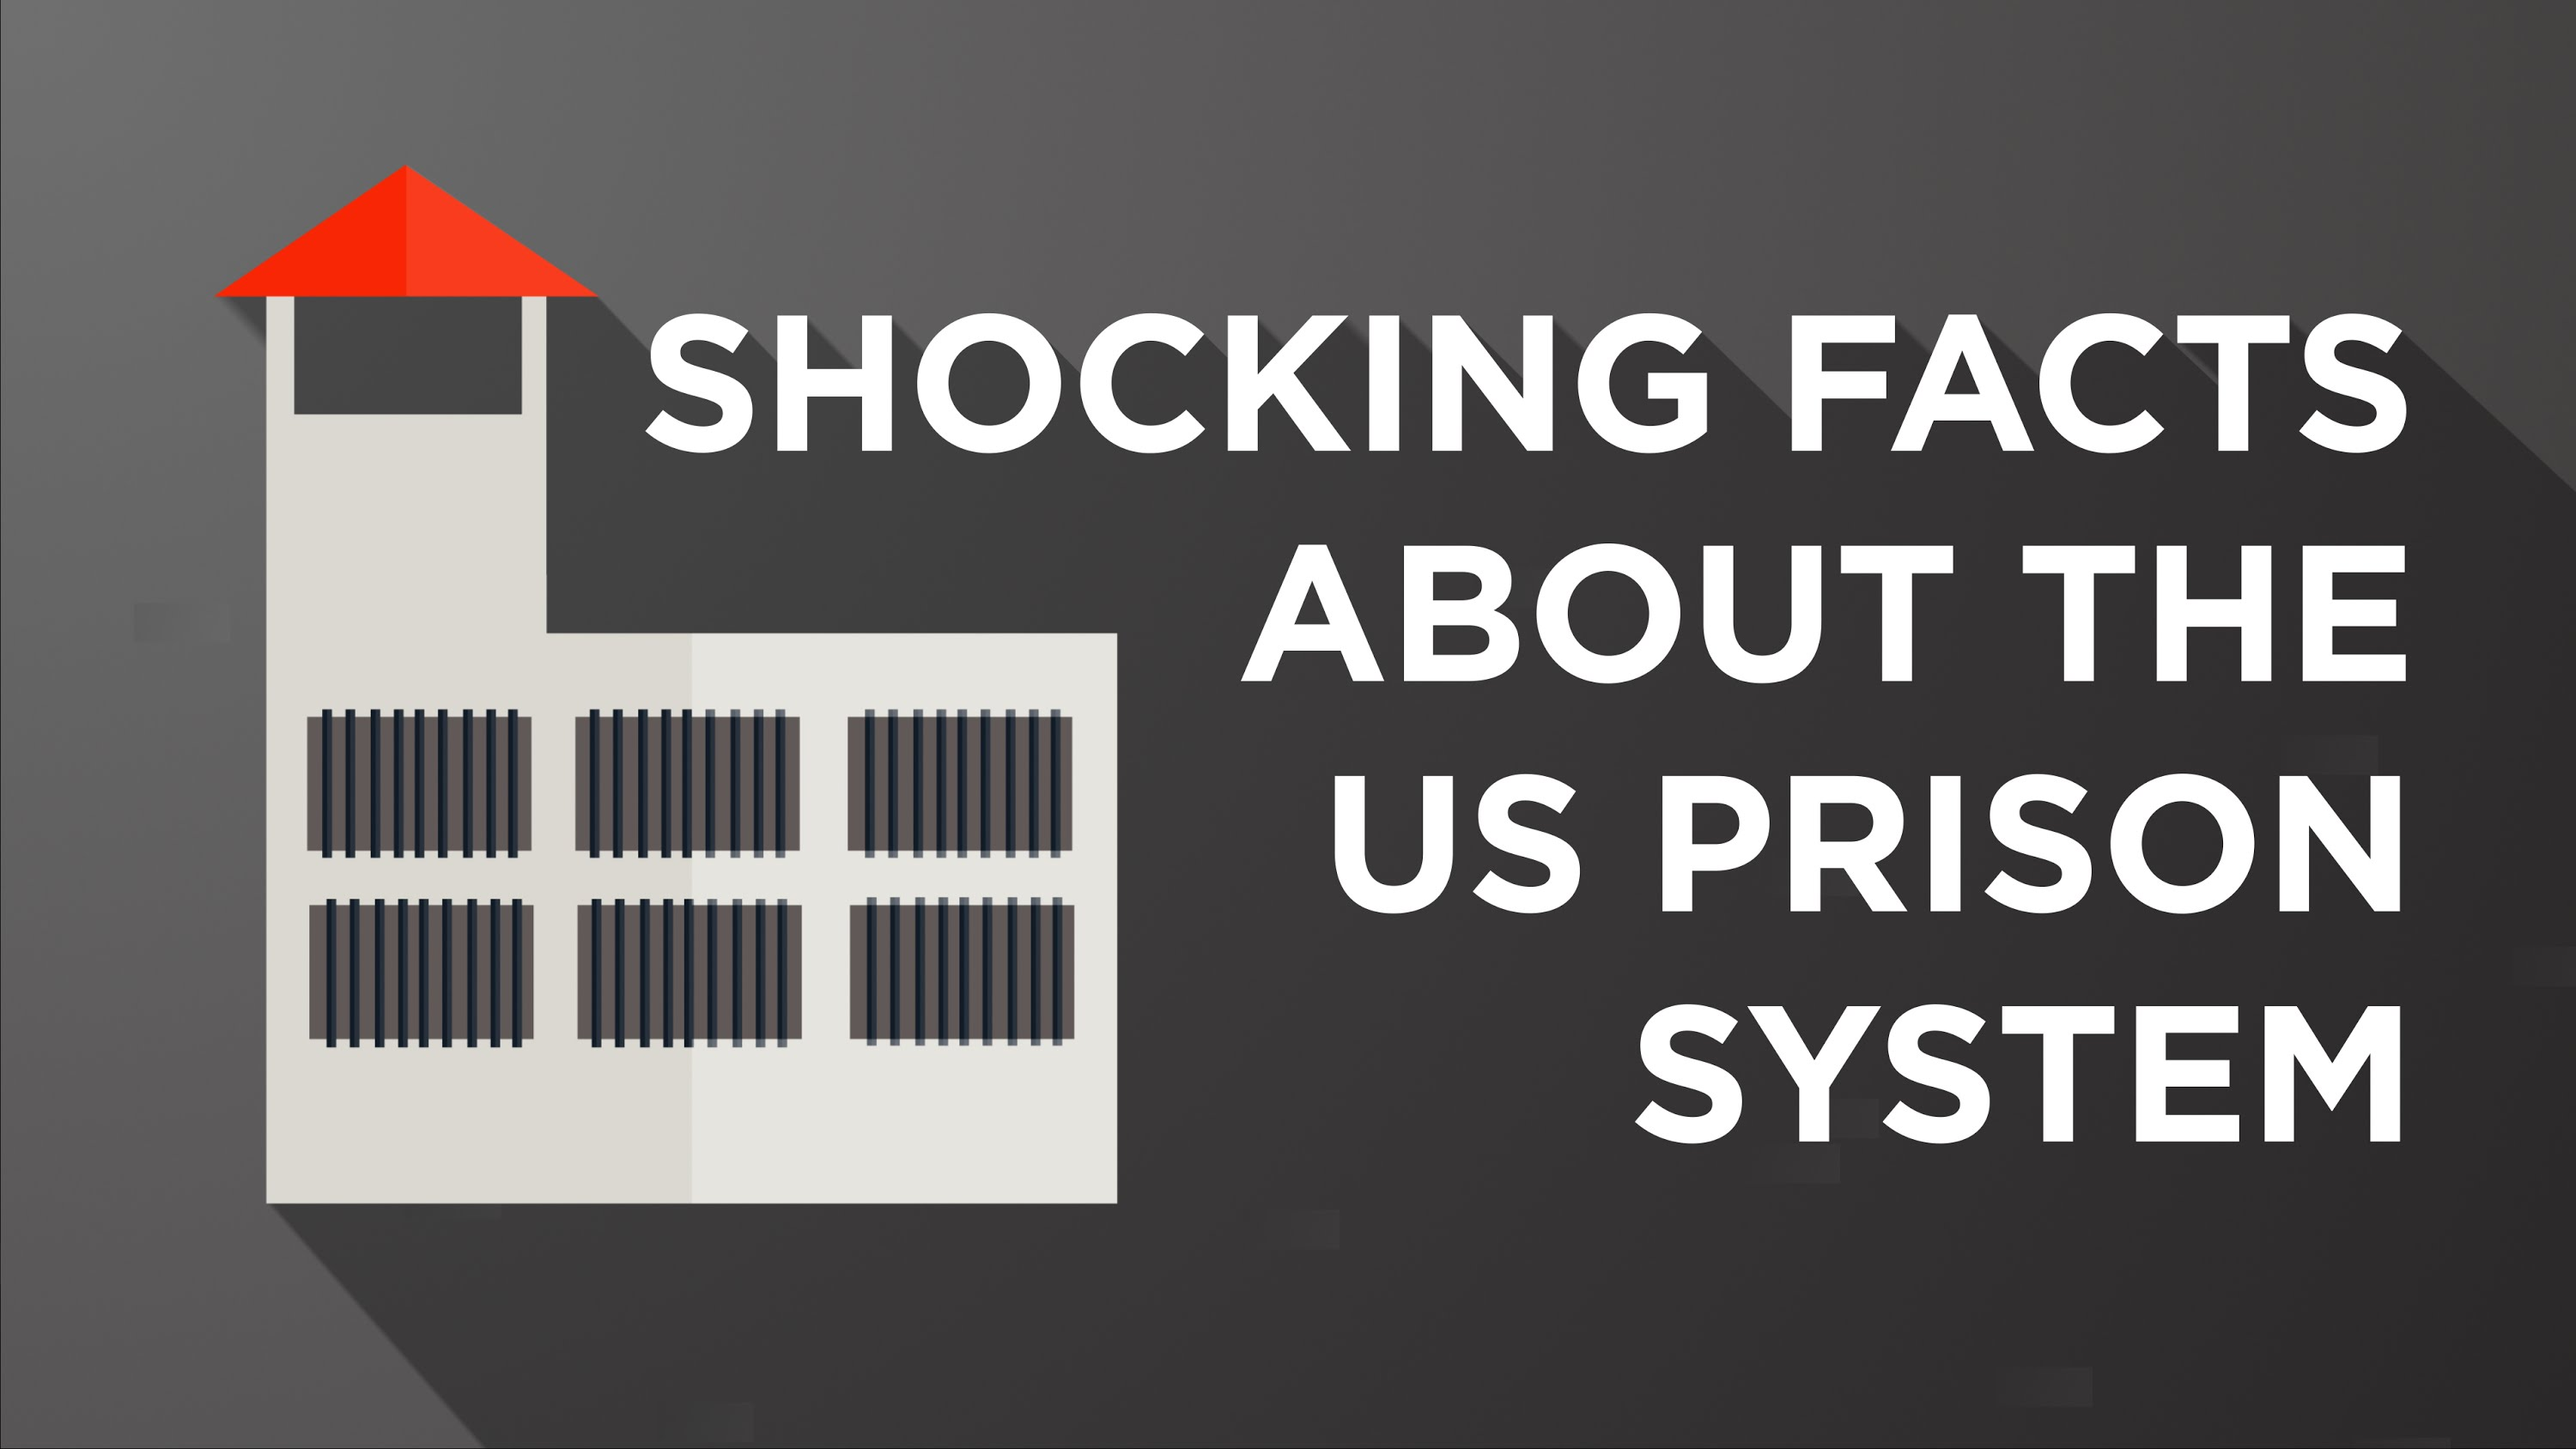 US Prison System - Facts